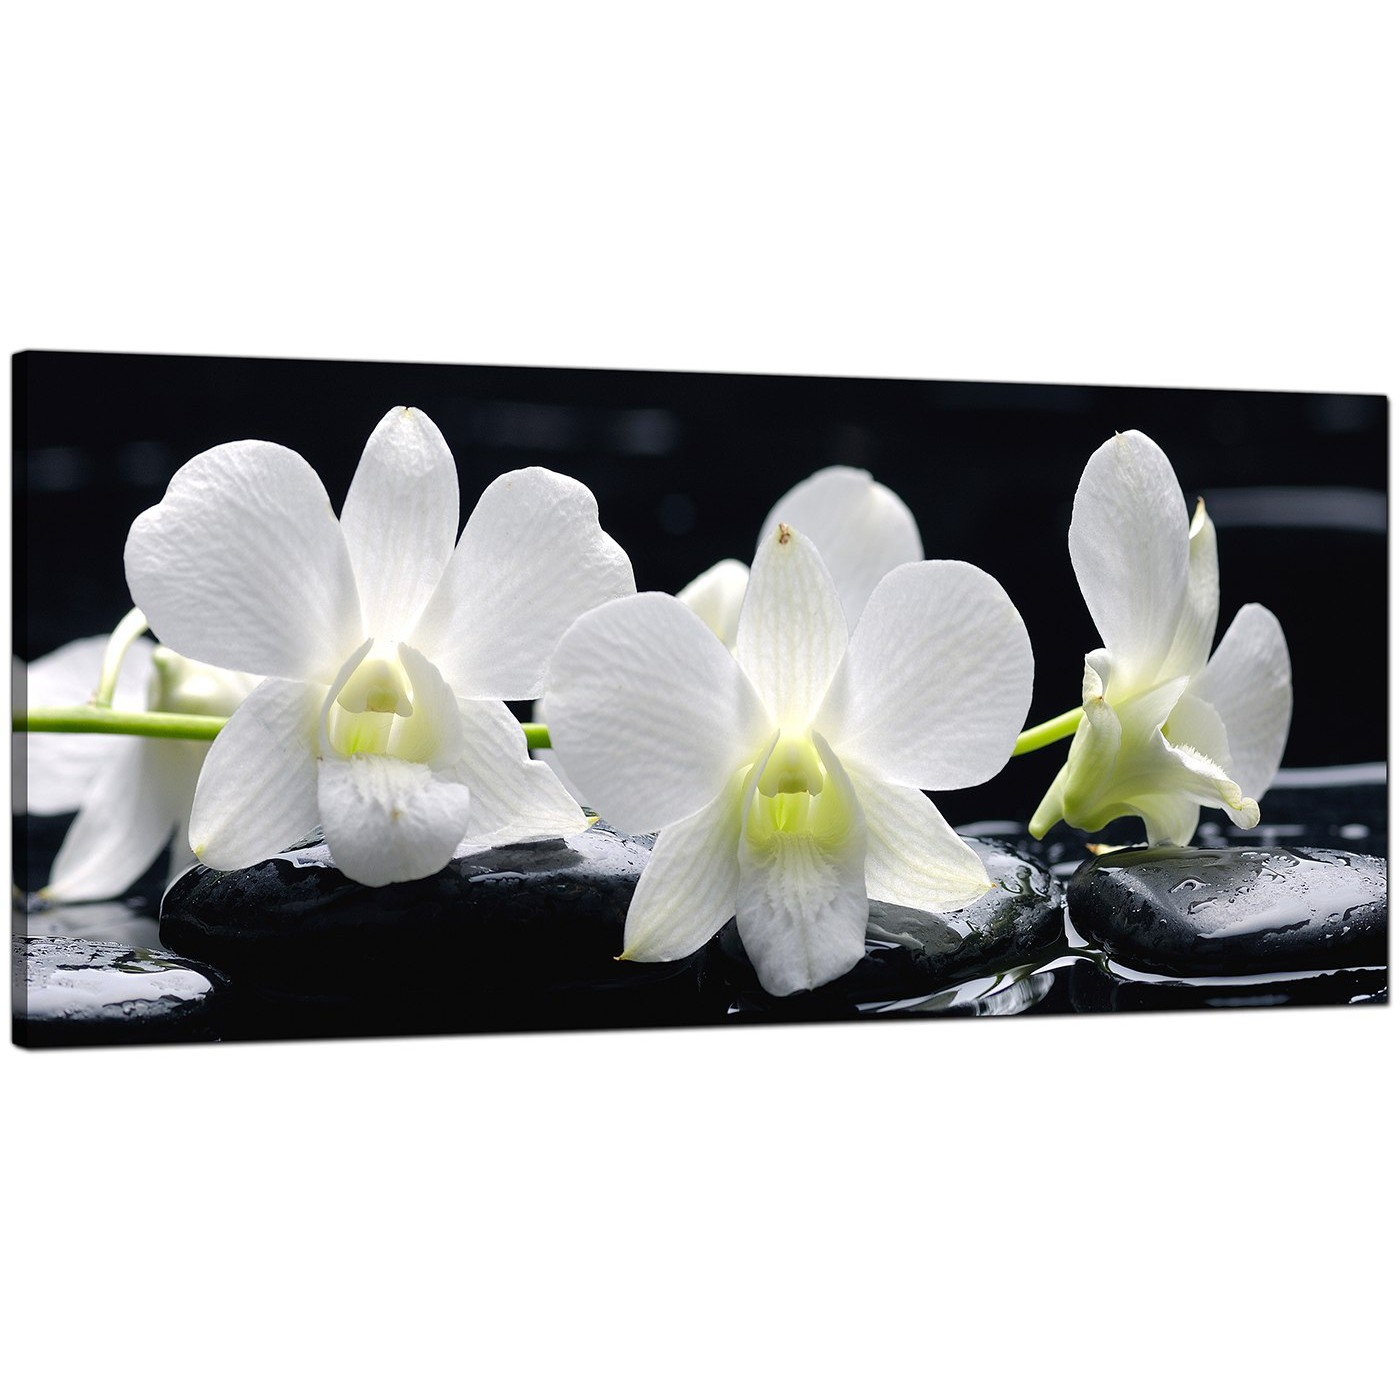 Black And White Canvas Prints Large Black And White Canvas Prints Of Orchid Flowers